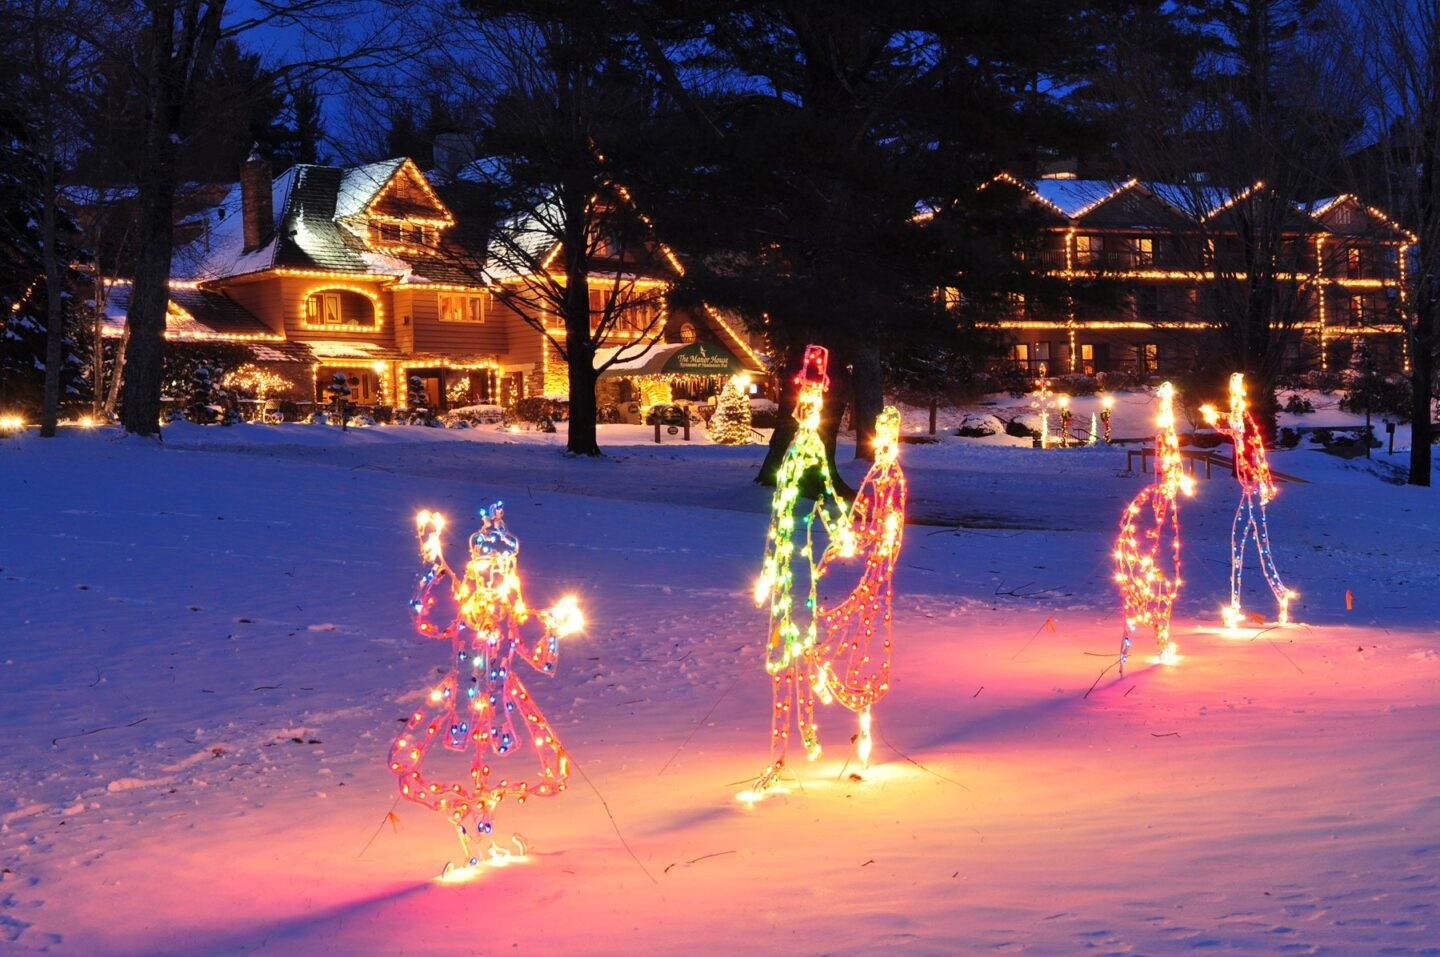 Holiday lights in the shape of people in the snow with a house with white Christmas lights in the background. Visiting Chetola Resort in Blowing Rock is one of the great winter events in North Carolina.